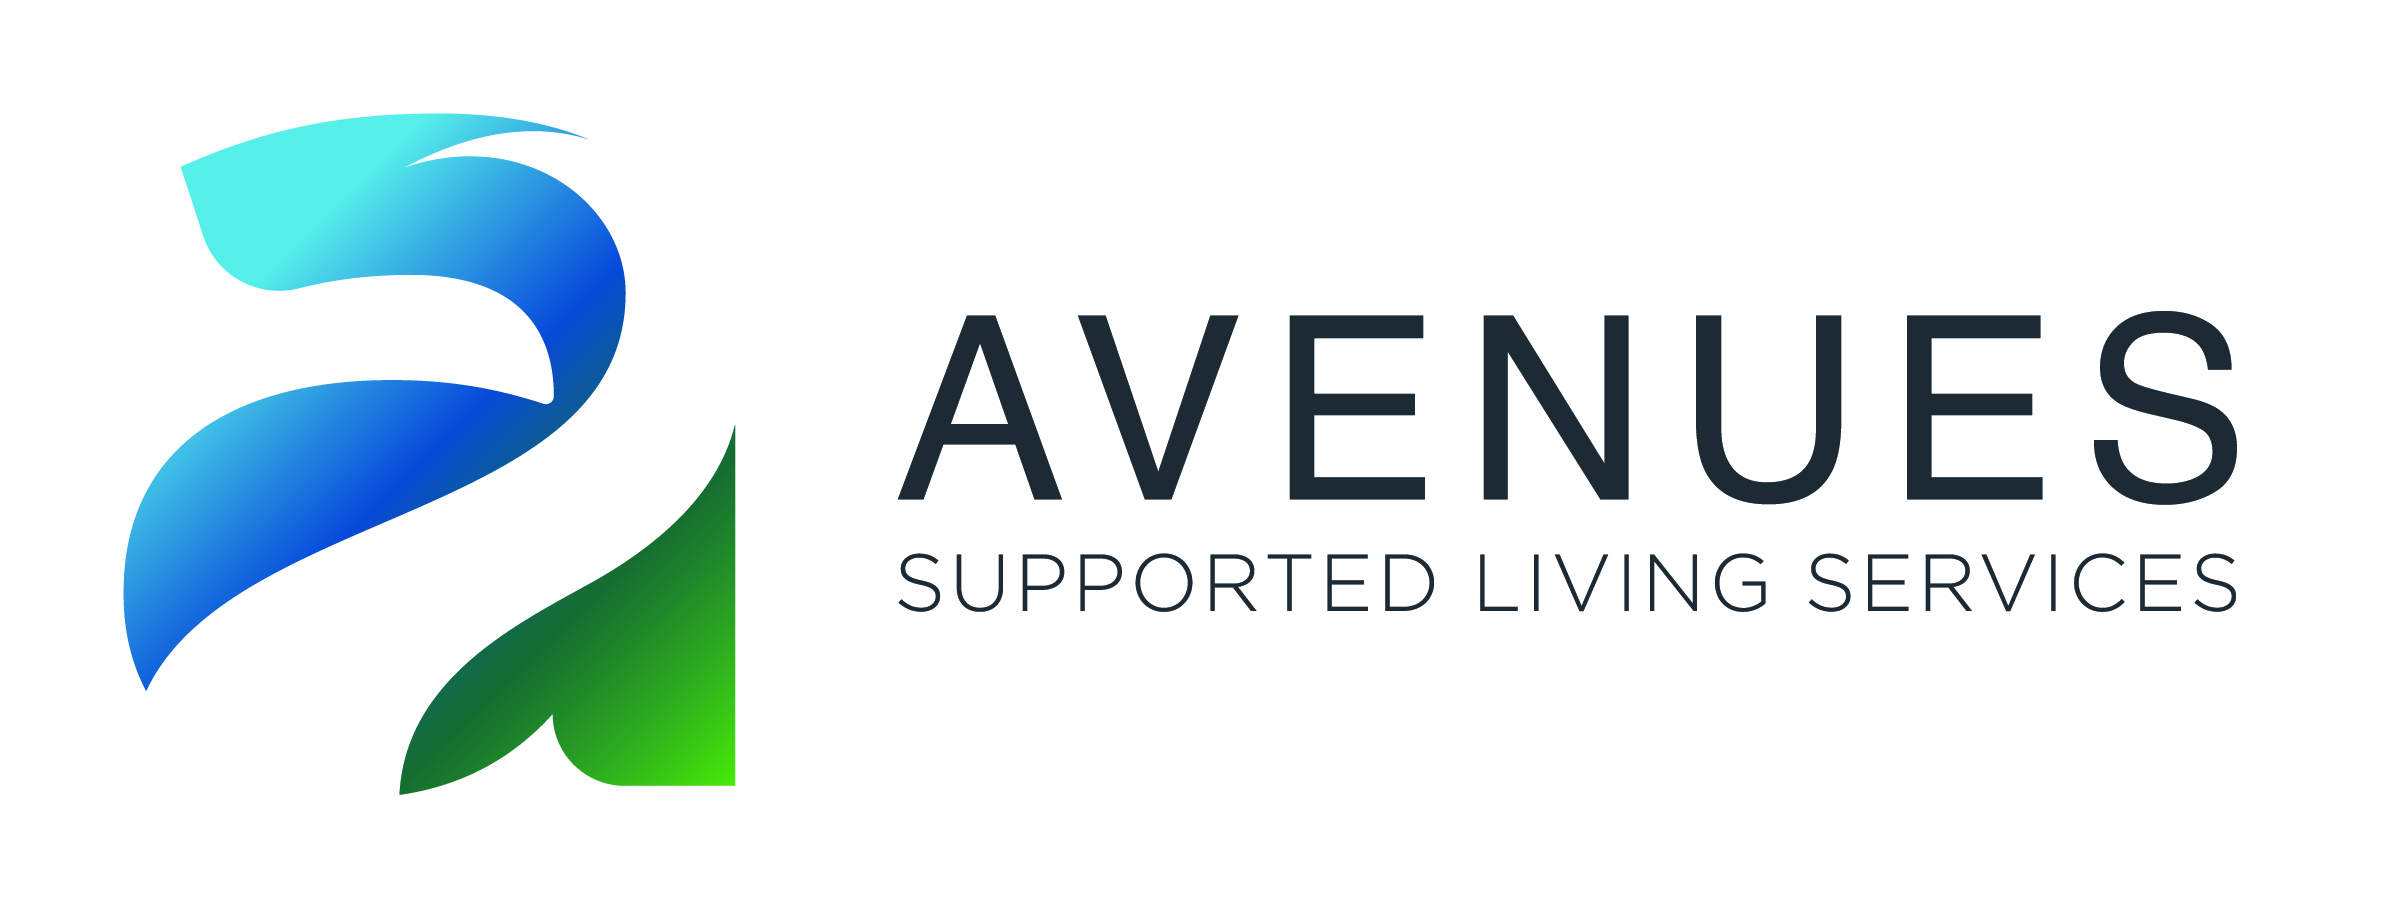 Avenues Supported Living Services